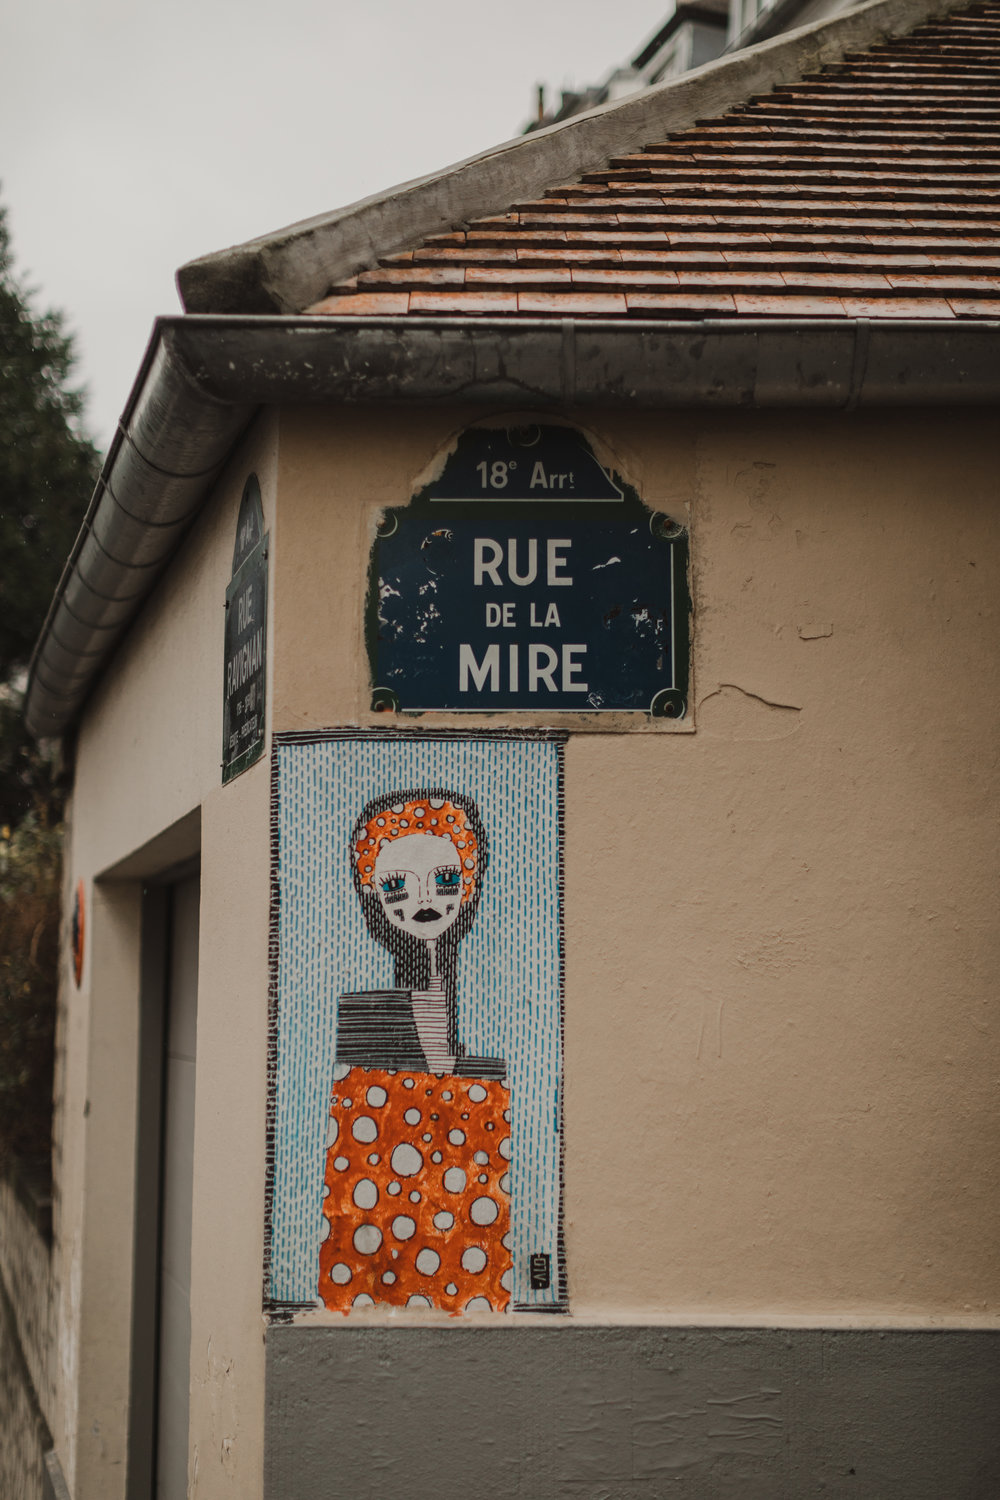 Pro tip : Every street sign also has the arrondissement up top. Sometimes the sign will also tell you who the street is named for (they will note  writer ,  painter , etc. at the bottom of the street sign).